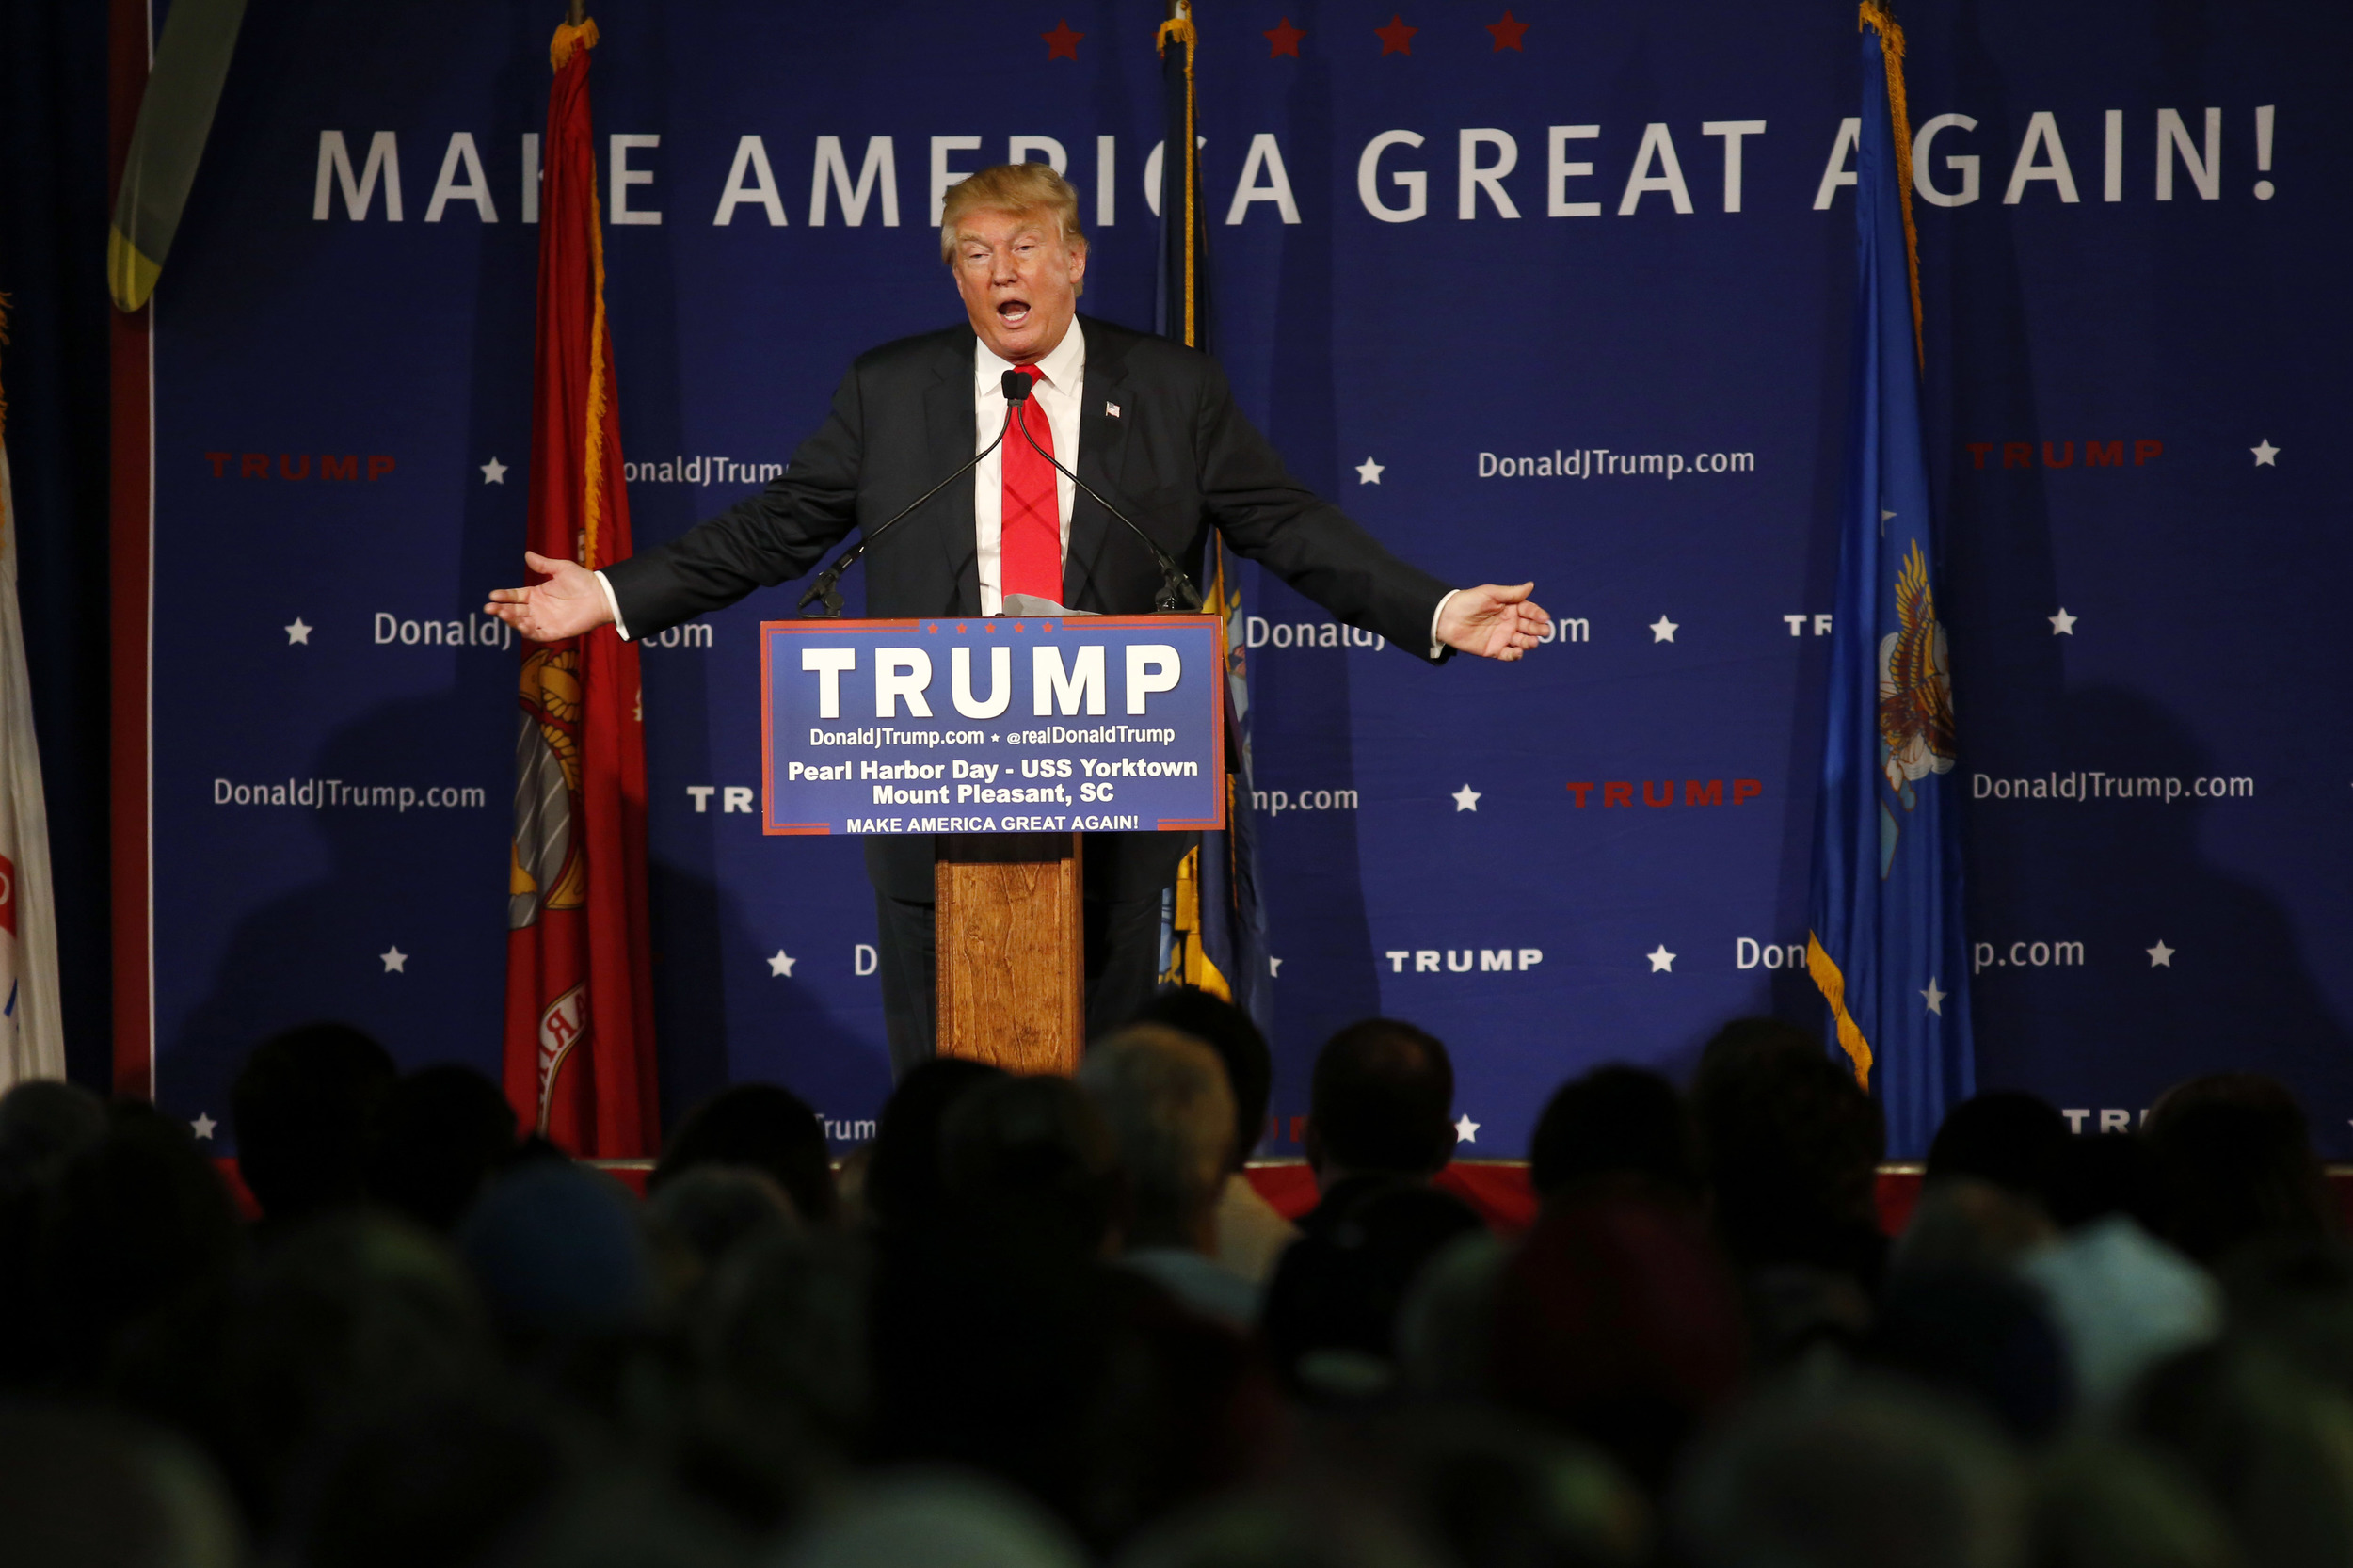 Republican presidential candidate, businessman Donald Trump, speaks during a rally coinciding with Pearl Harbor Day at Patriots Point aboard the aircraft carrier USS Yorktown in Mt. Pleasant, S.C., Monday, Dec. 7, 2015. (Mic Smith/AP)